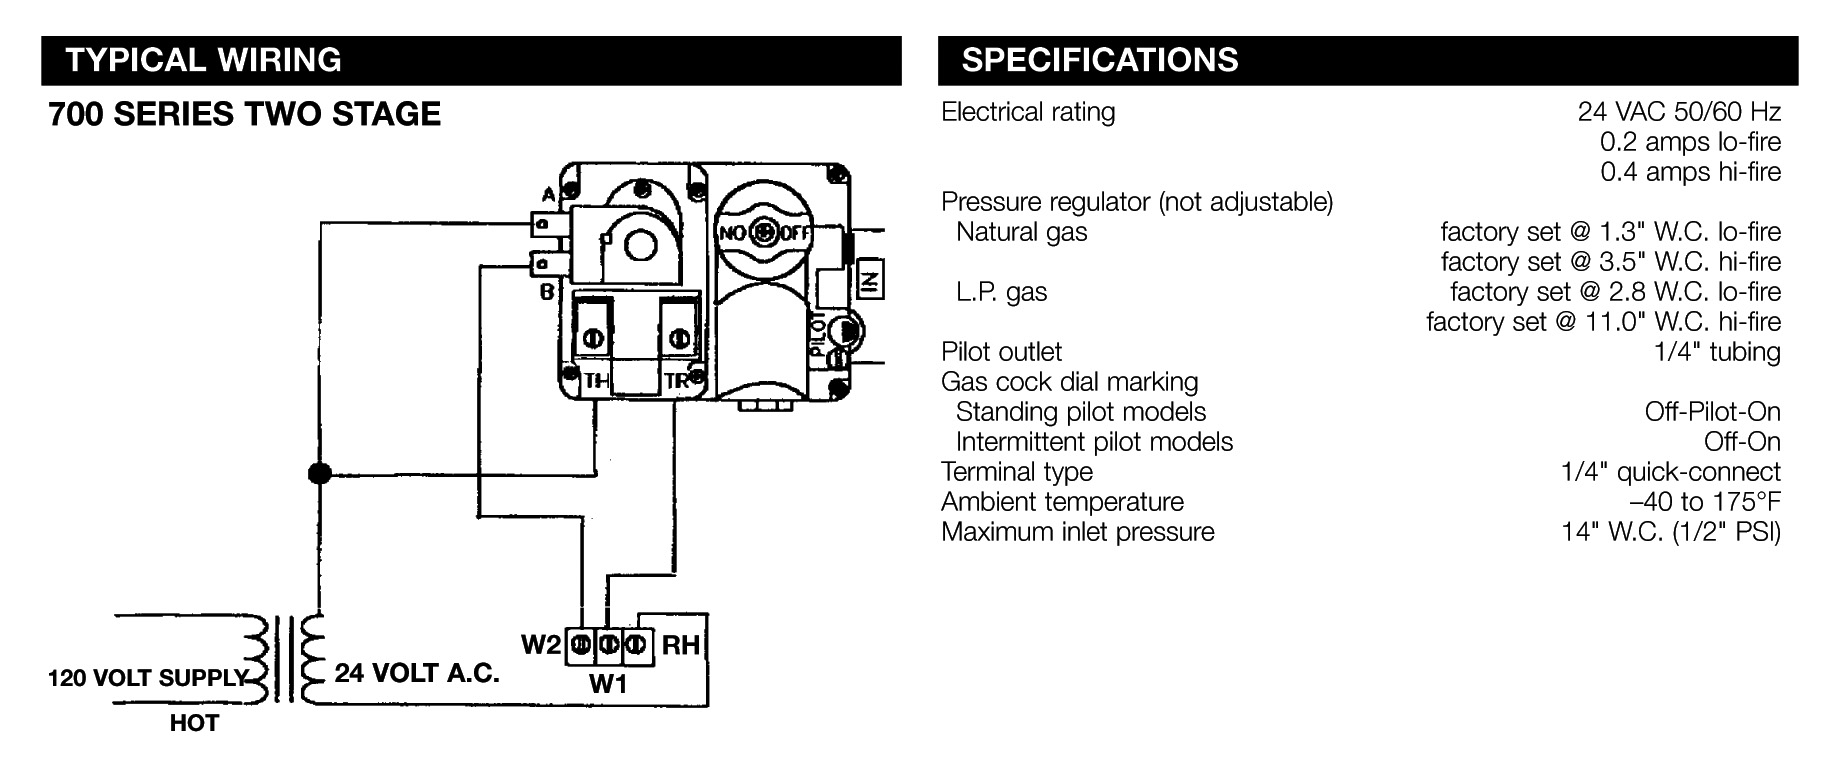 787cc71d fa10 4f03 824b c5b9bcc9b3d8?resize=665%2C281&ssl=1 gas valve wiring diagram robertshaw wiring diagram Robertshaw Gas Valve 710 502 at crackthecode.co